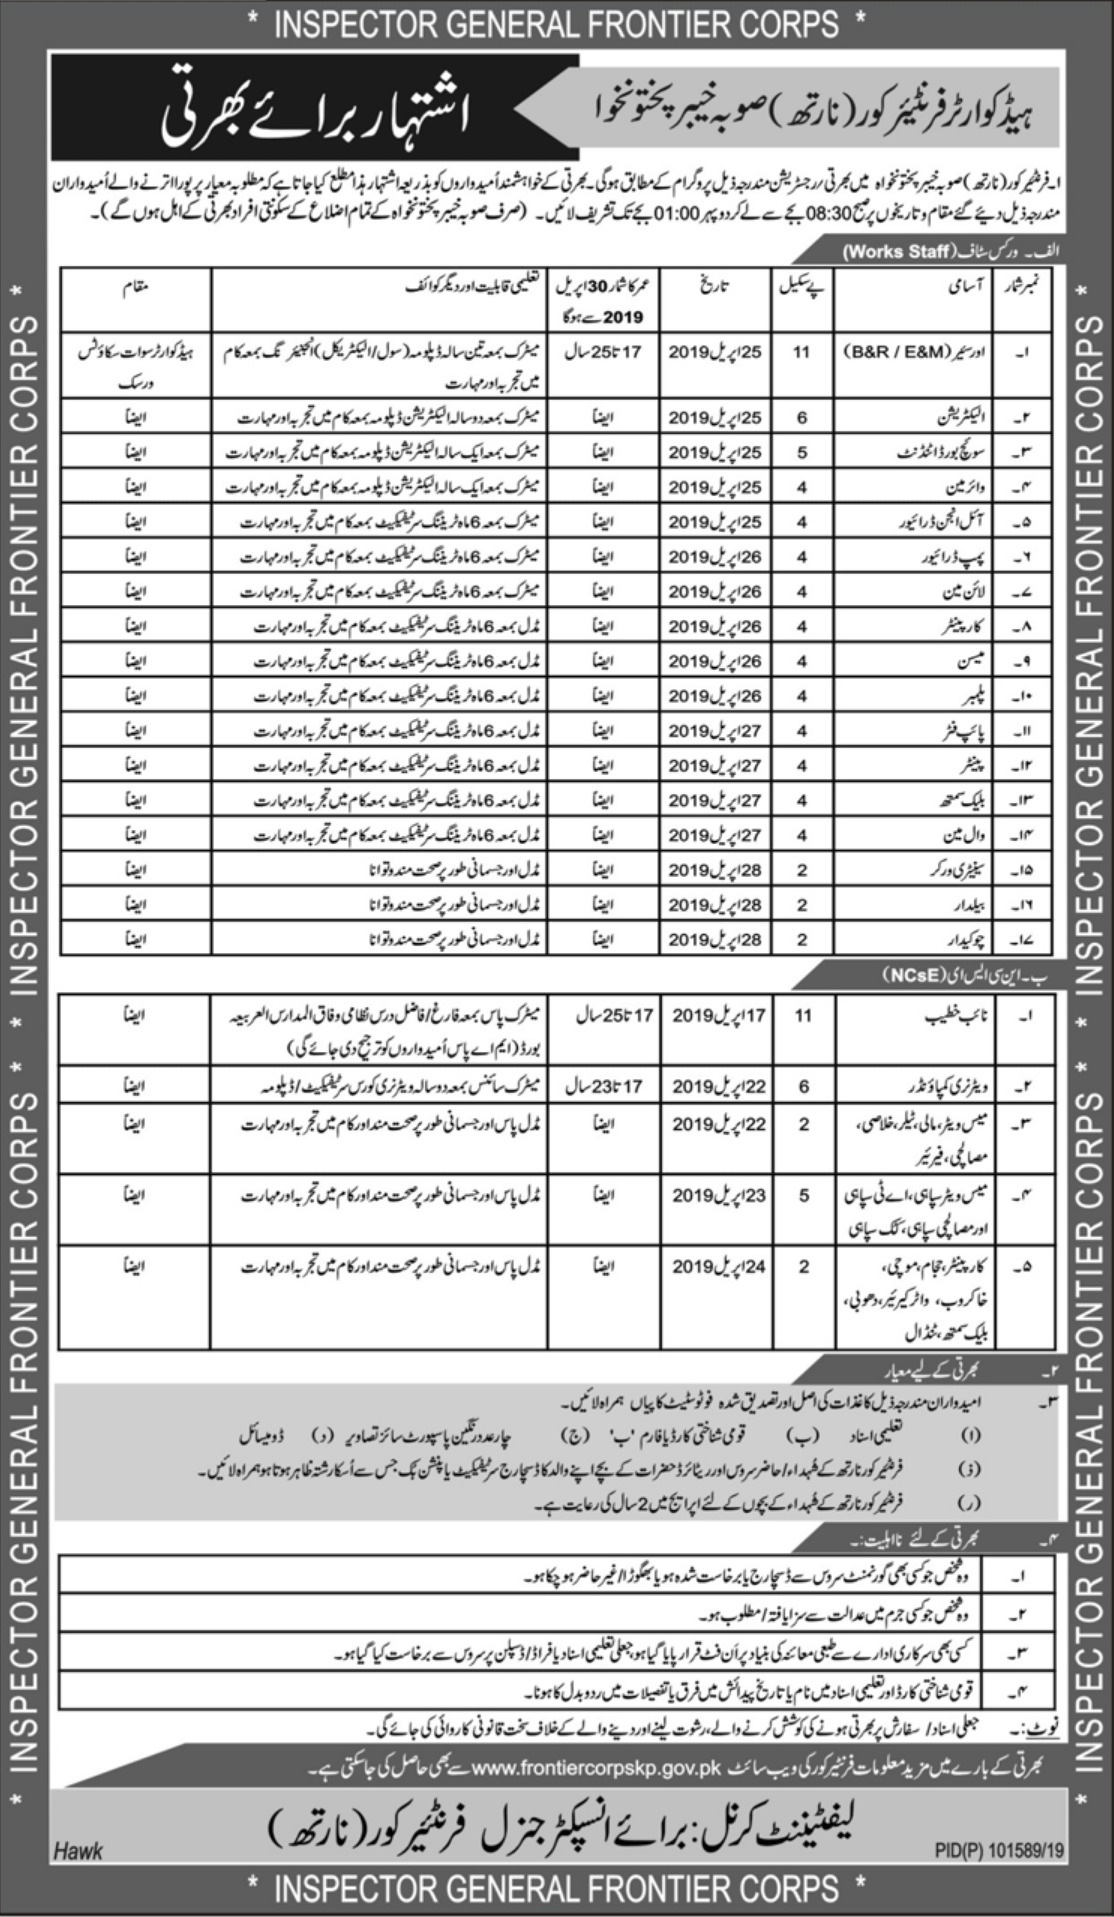 Frontier Corps FC KPK Jobs 2019 North Khyber Pakhtunkhwa